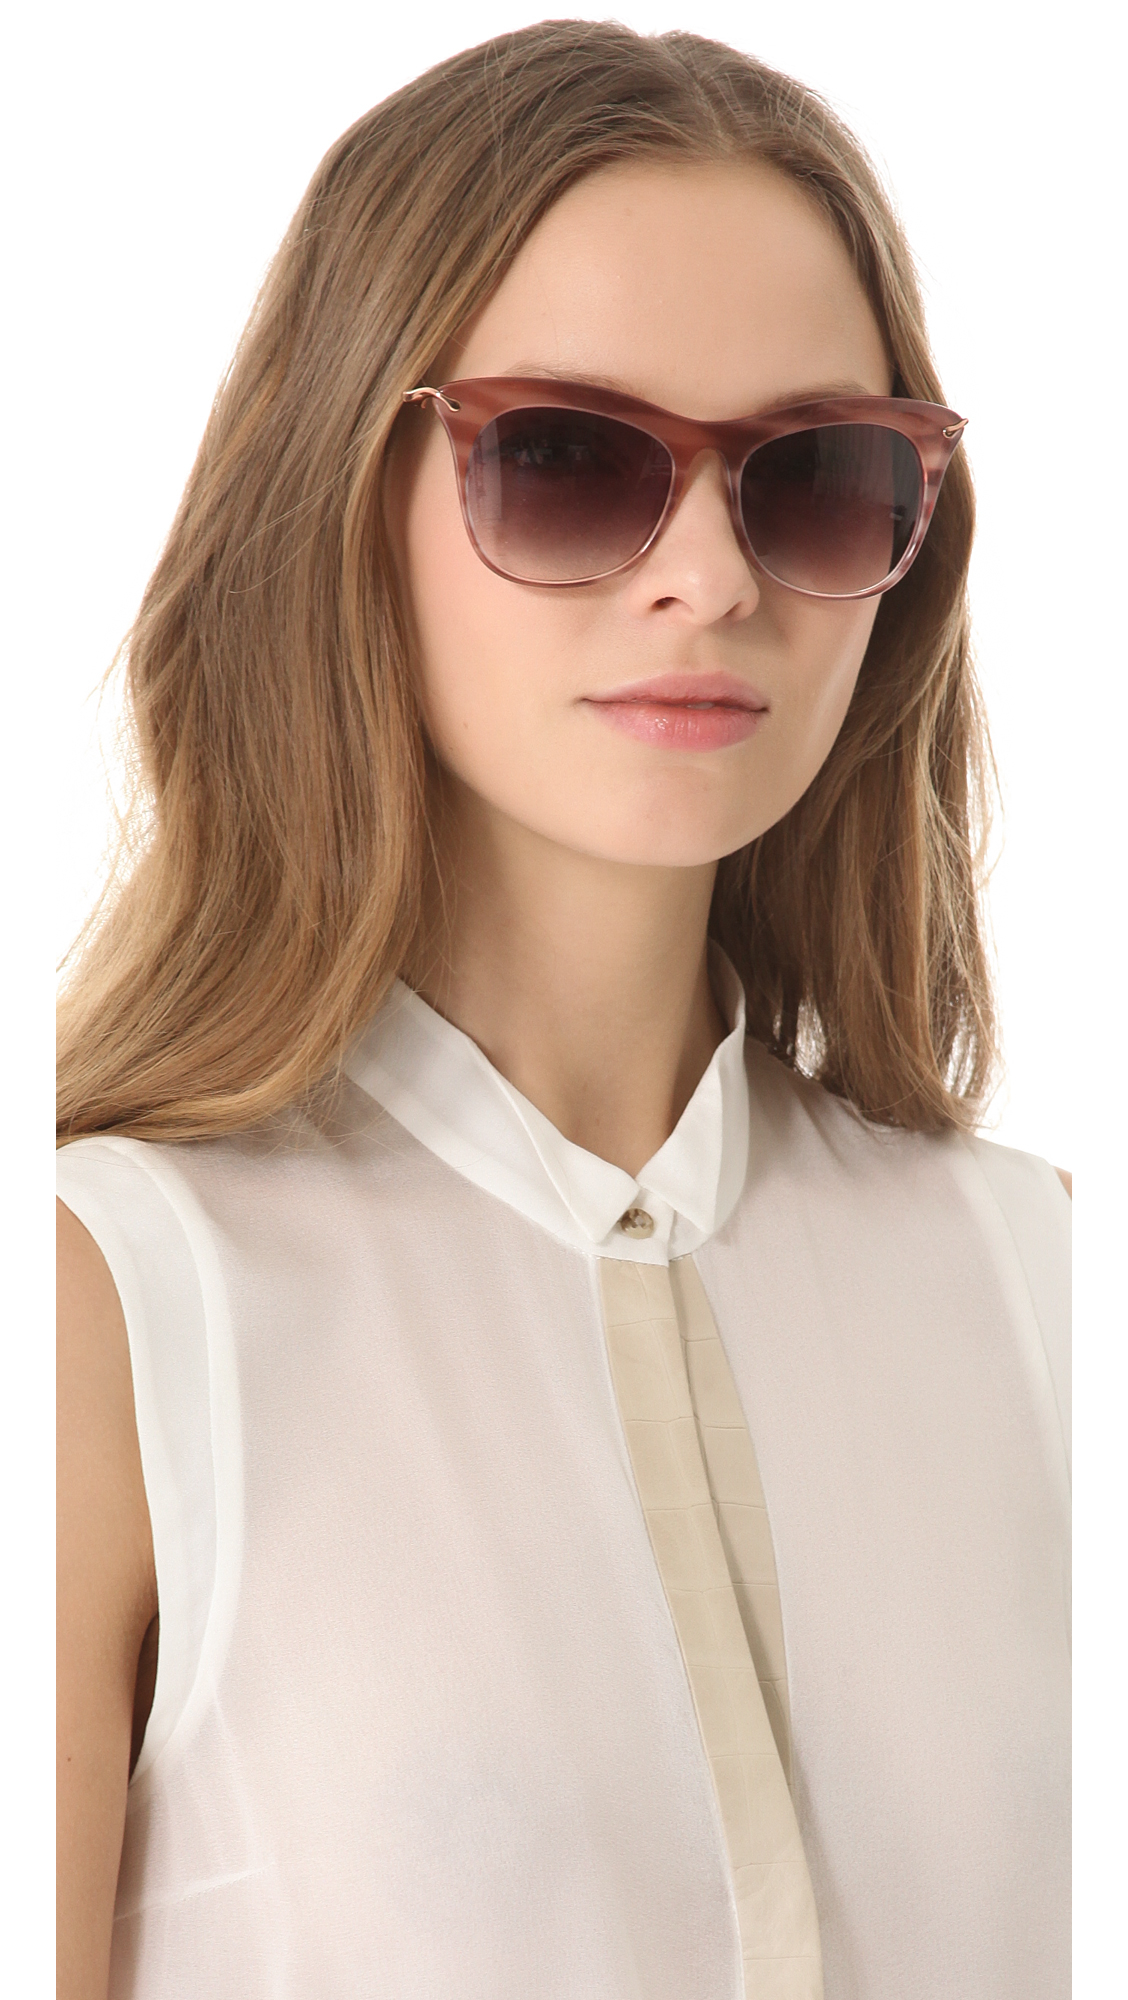 81b5aa2920 Lyst - Elizabeth and James Fairfax Sunglasses in Pink